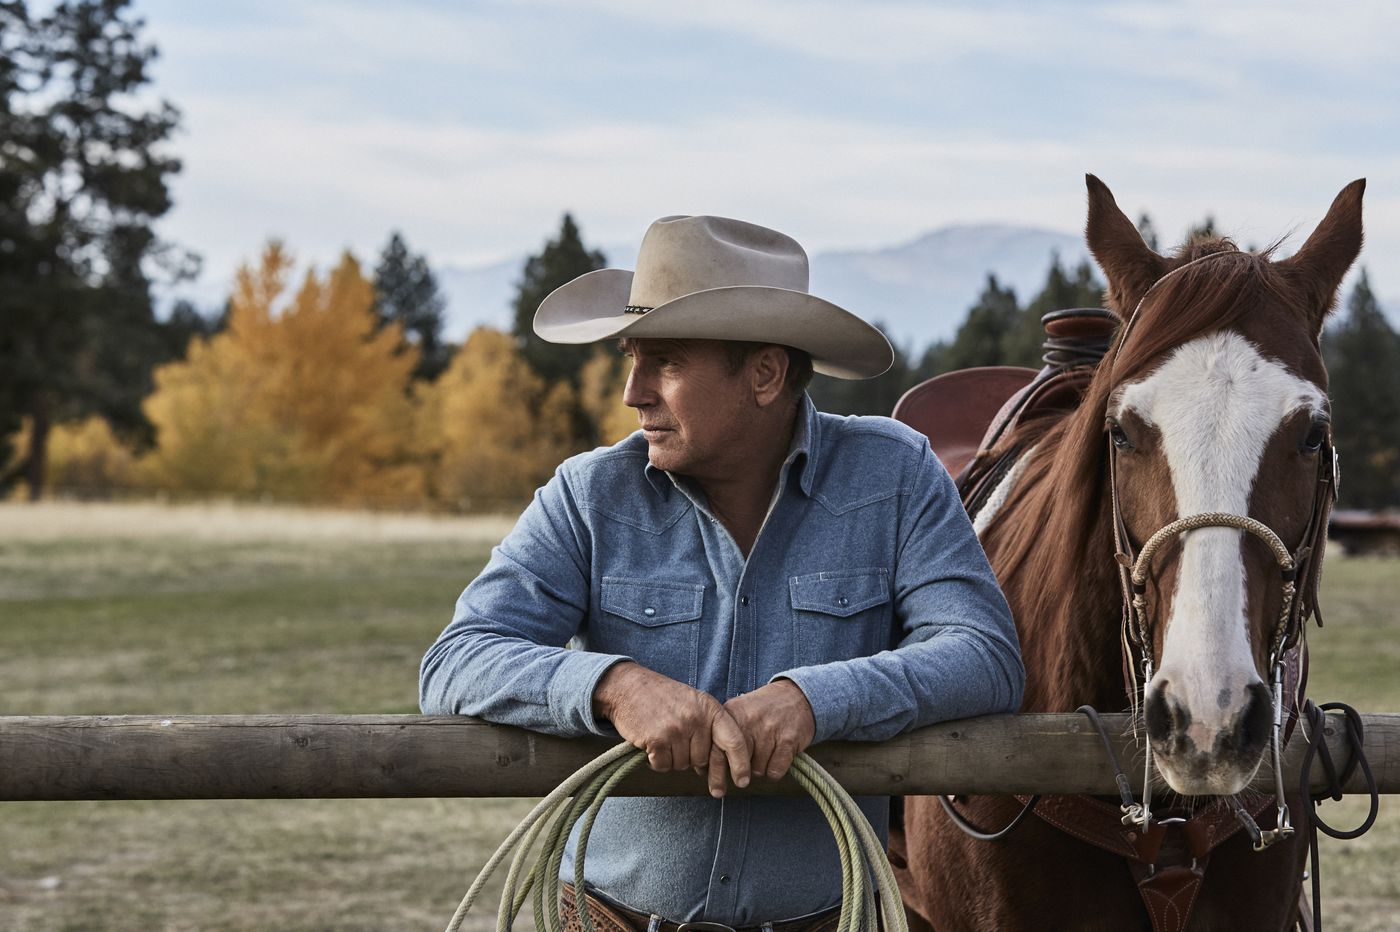 With Kevin Costner in 'Yellowstone,' Paramount Network finds home on the range